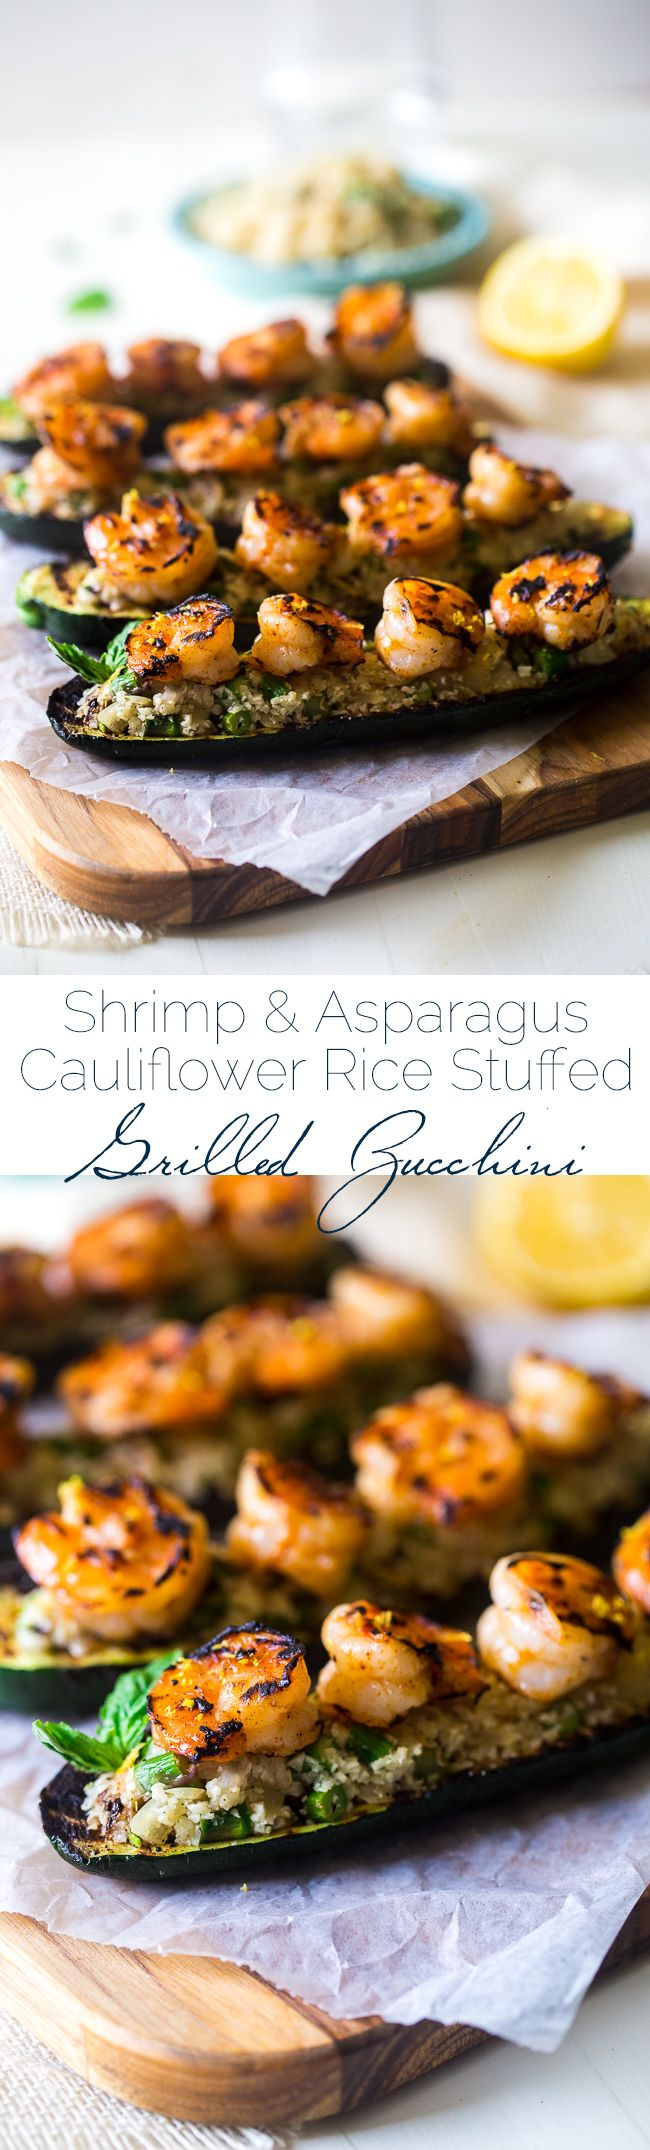 Paleo Lemon Asparagus Cauliflower Rice Stuffed Grilled Zucchini With Shrimp - Cauliflower rice is mixed with vegetables and fresh lemon, stuffed into grilled zucchini and topped with shrimp. An easy, gluten free, and healthy meal, that is under 200 calories! | Foodfaithfitness.com | @FoodFaithFit